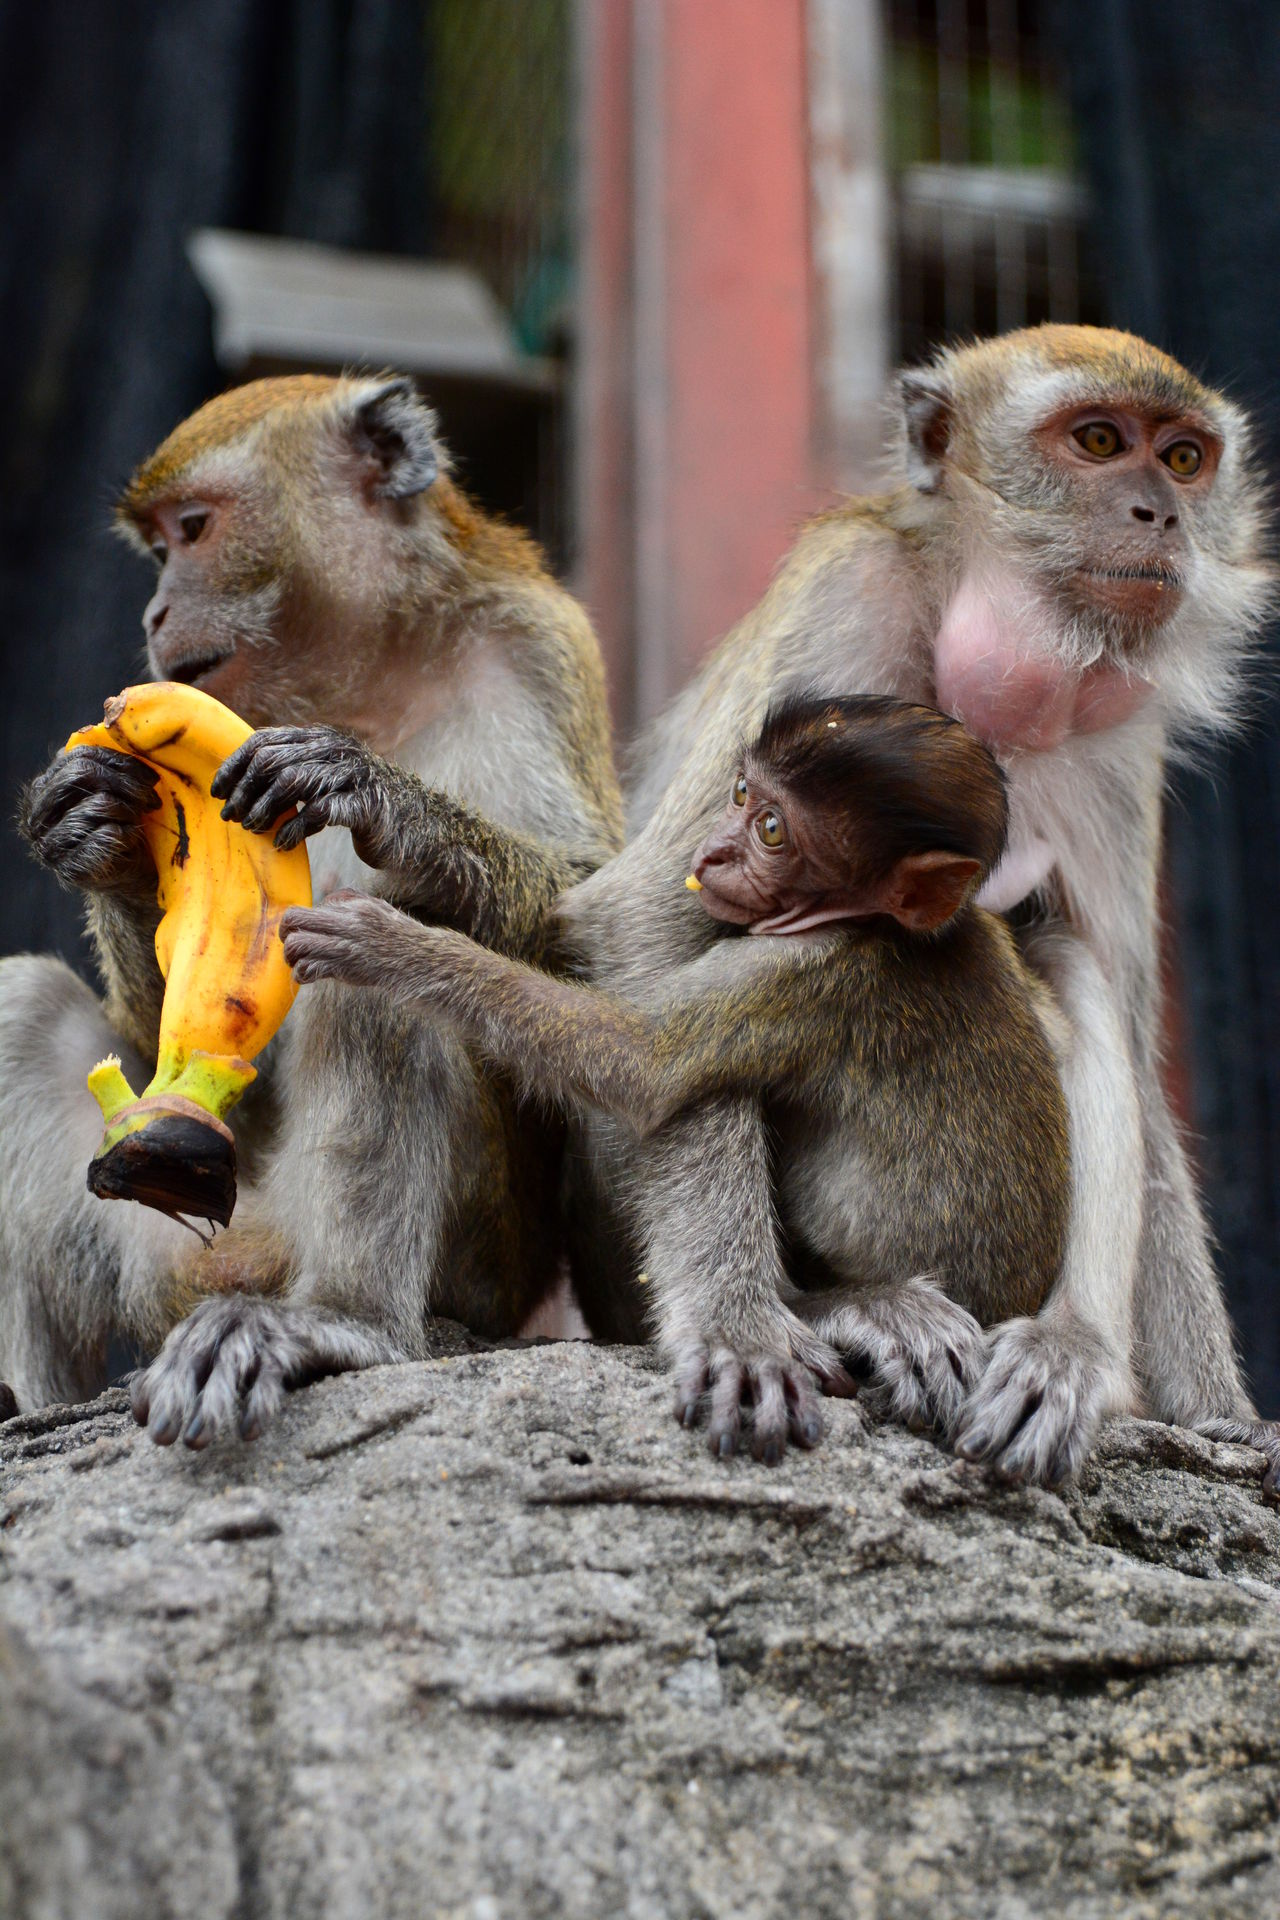 Monkeys family at Batu Caves Animal Animal Family Animal Themes ASIA Batu Caves Batu Caves -Malaysia EyeEmMalaysia Focus On Foreground Macaque Malaysia Malaysian Mammal Monkey Monkey Family Monkeys Nature No People Outdoors Three Animals Travel Travel Photography Young Animal